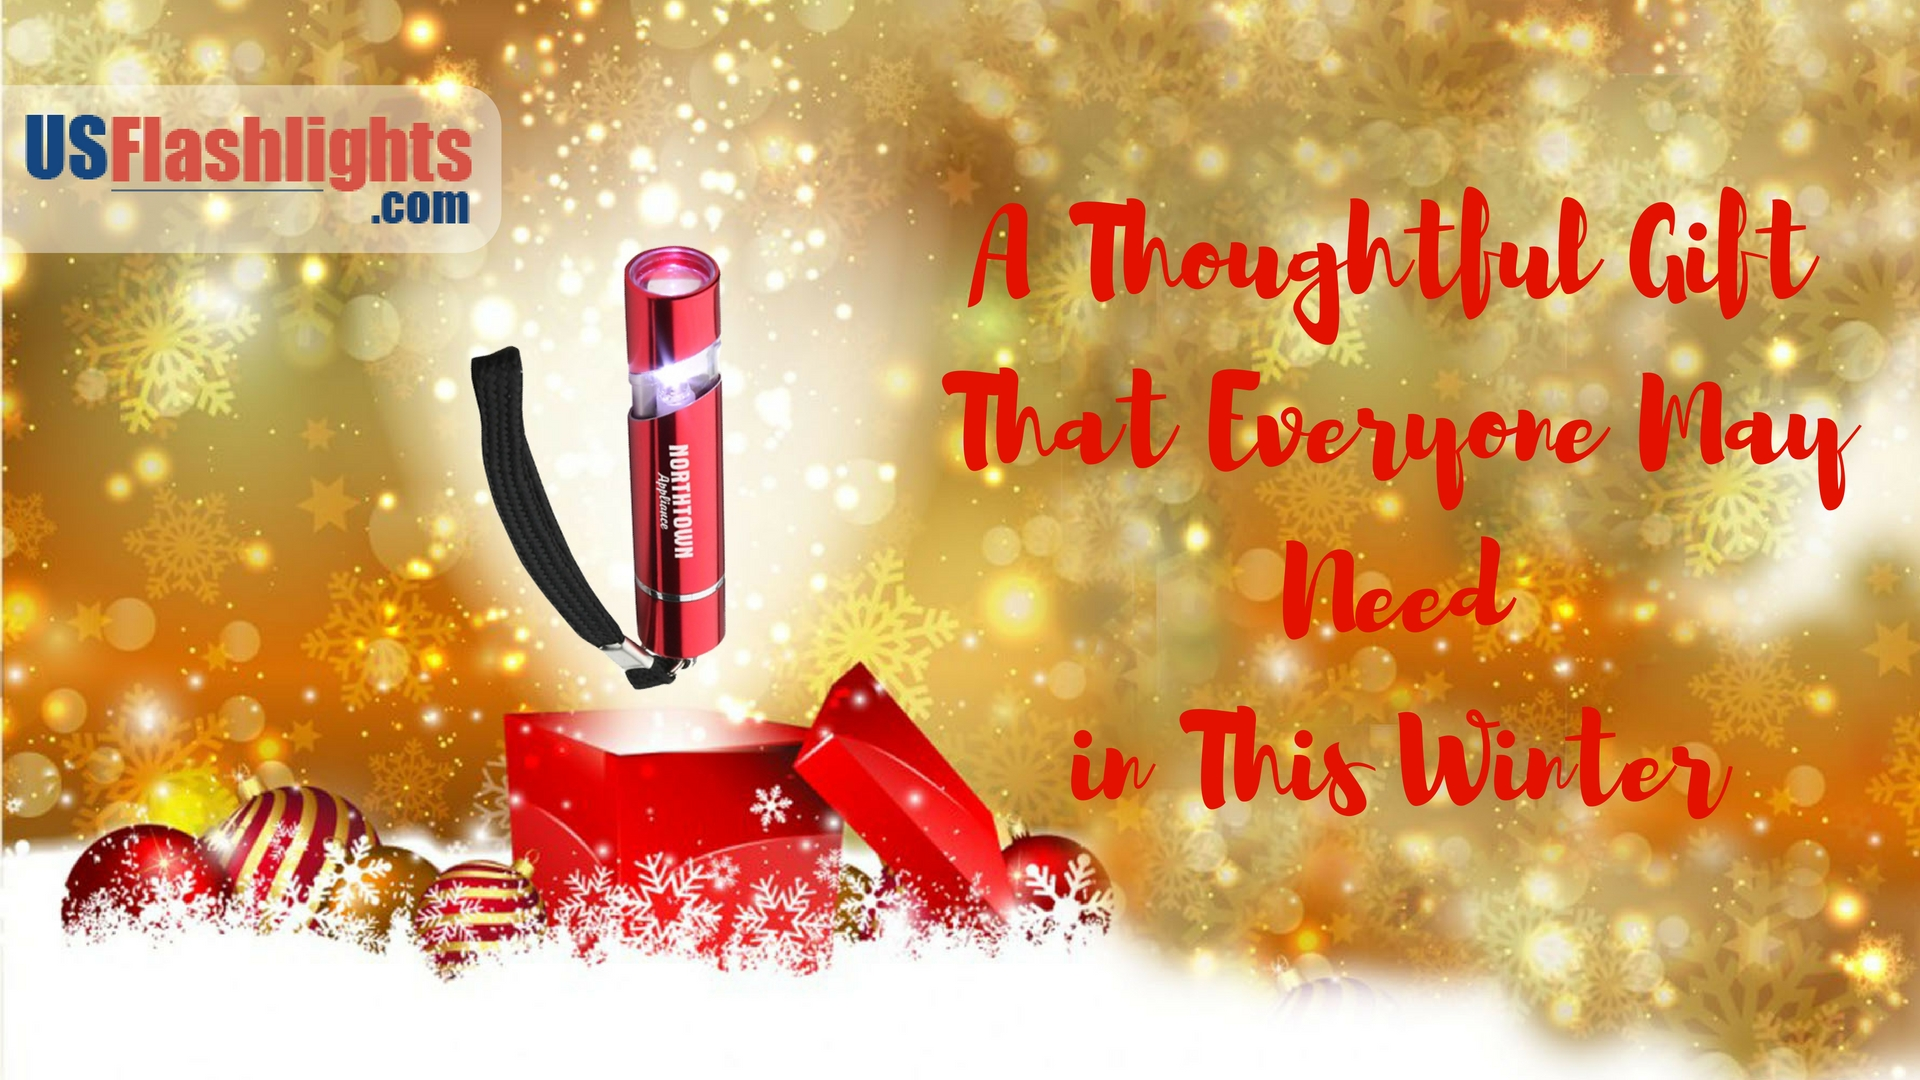 winter-giftideas-promotional-flashlights